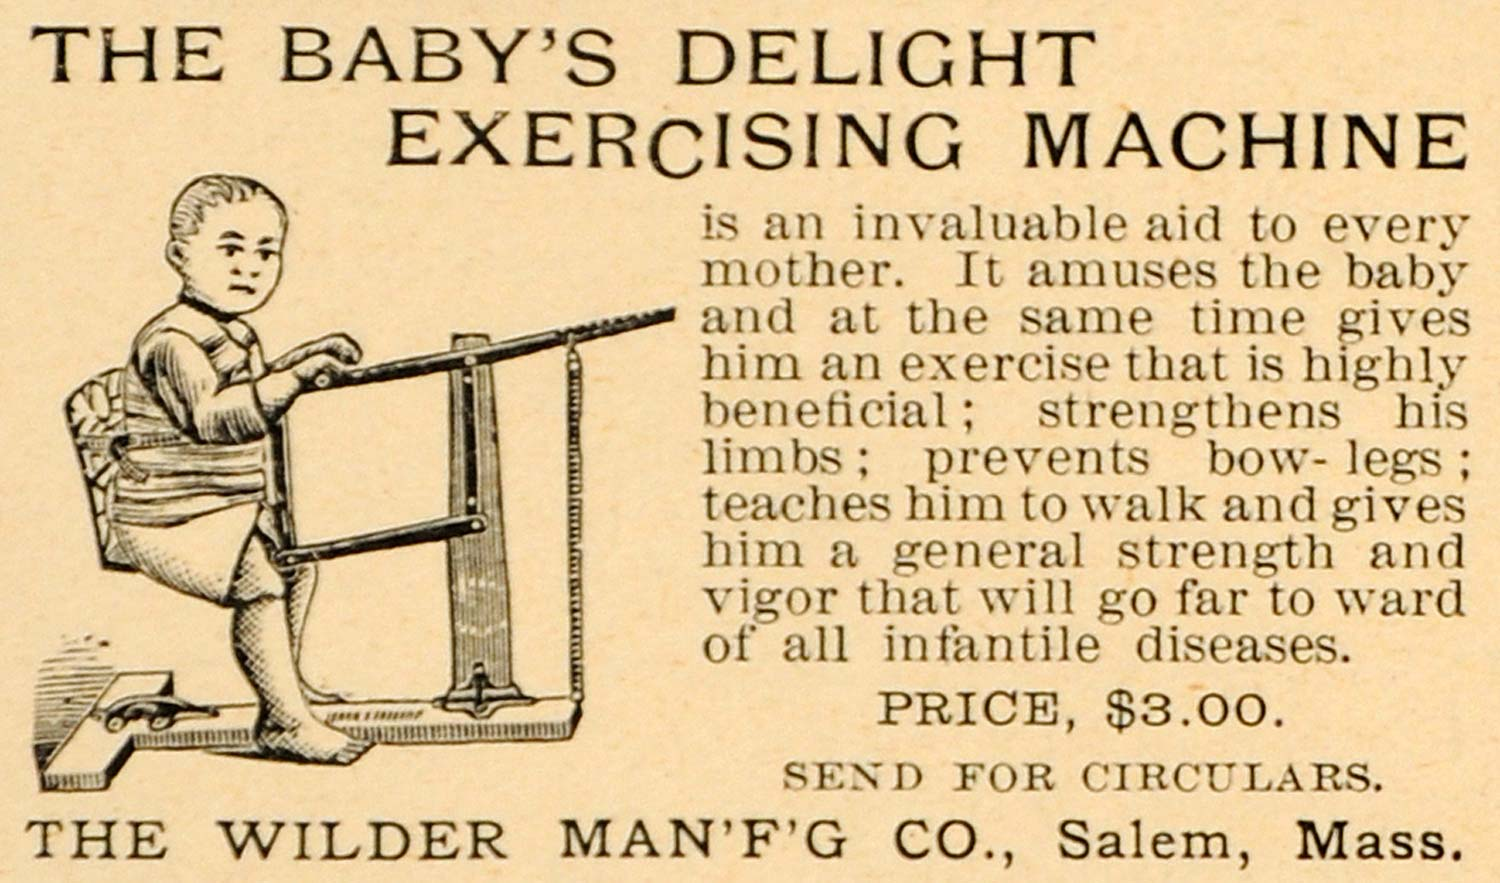 1892 Ad Wilder Manufacturing Co. Baby Exercise Machine - ORIGINAL LHJ4